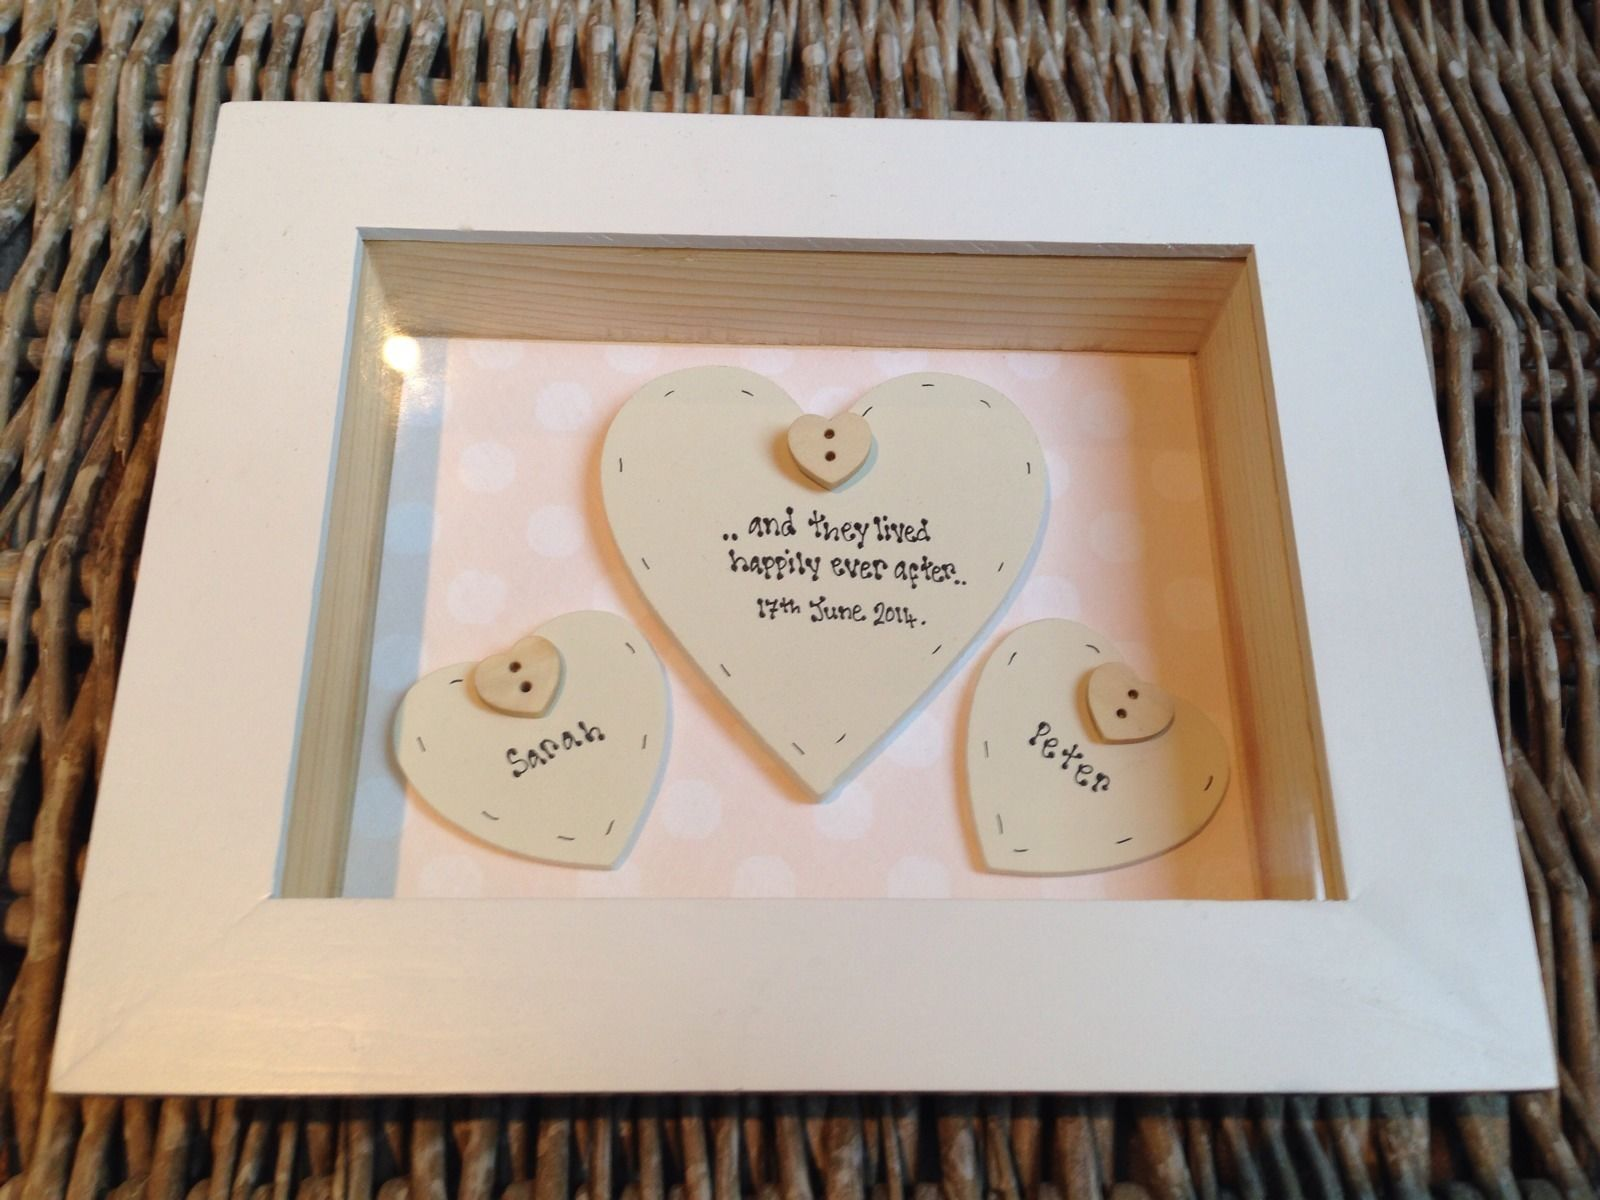 Gift for bride and groom on wedding day